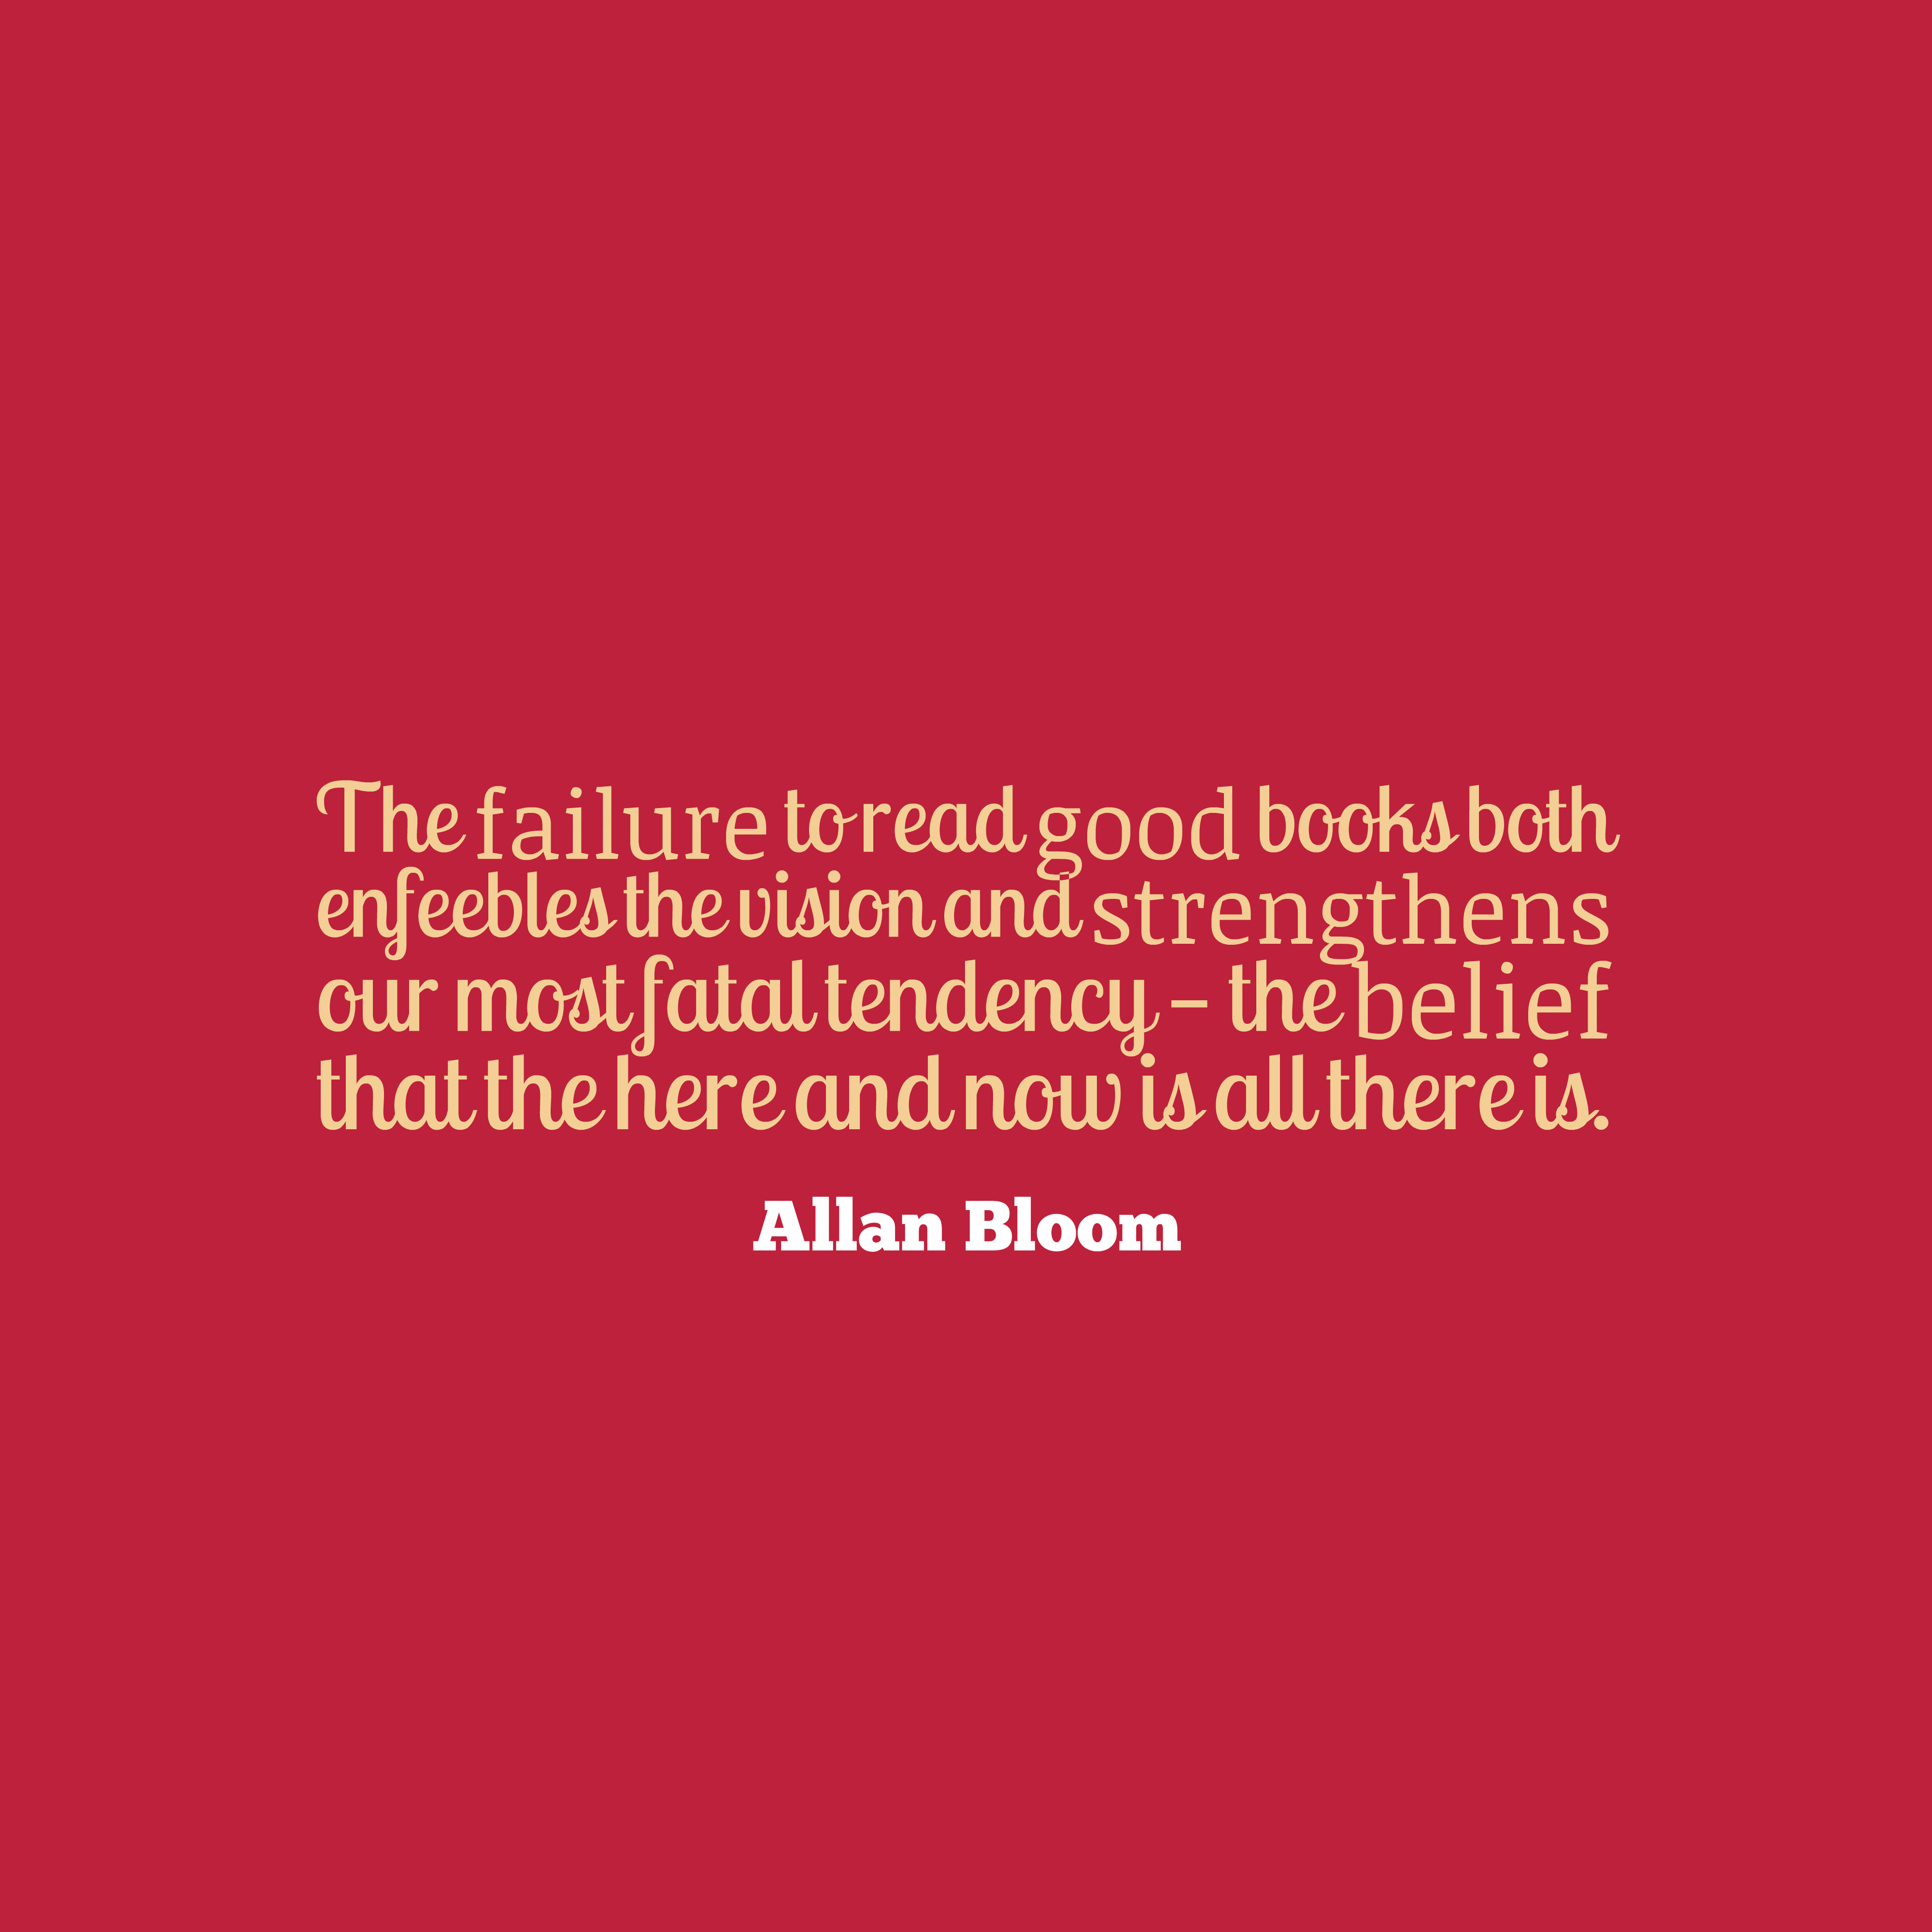 Bloom Quotes 25 Best Allan Bloom Quotes Images